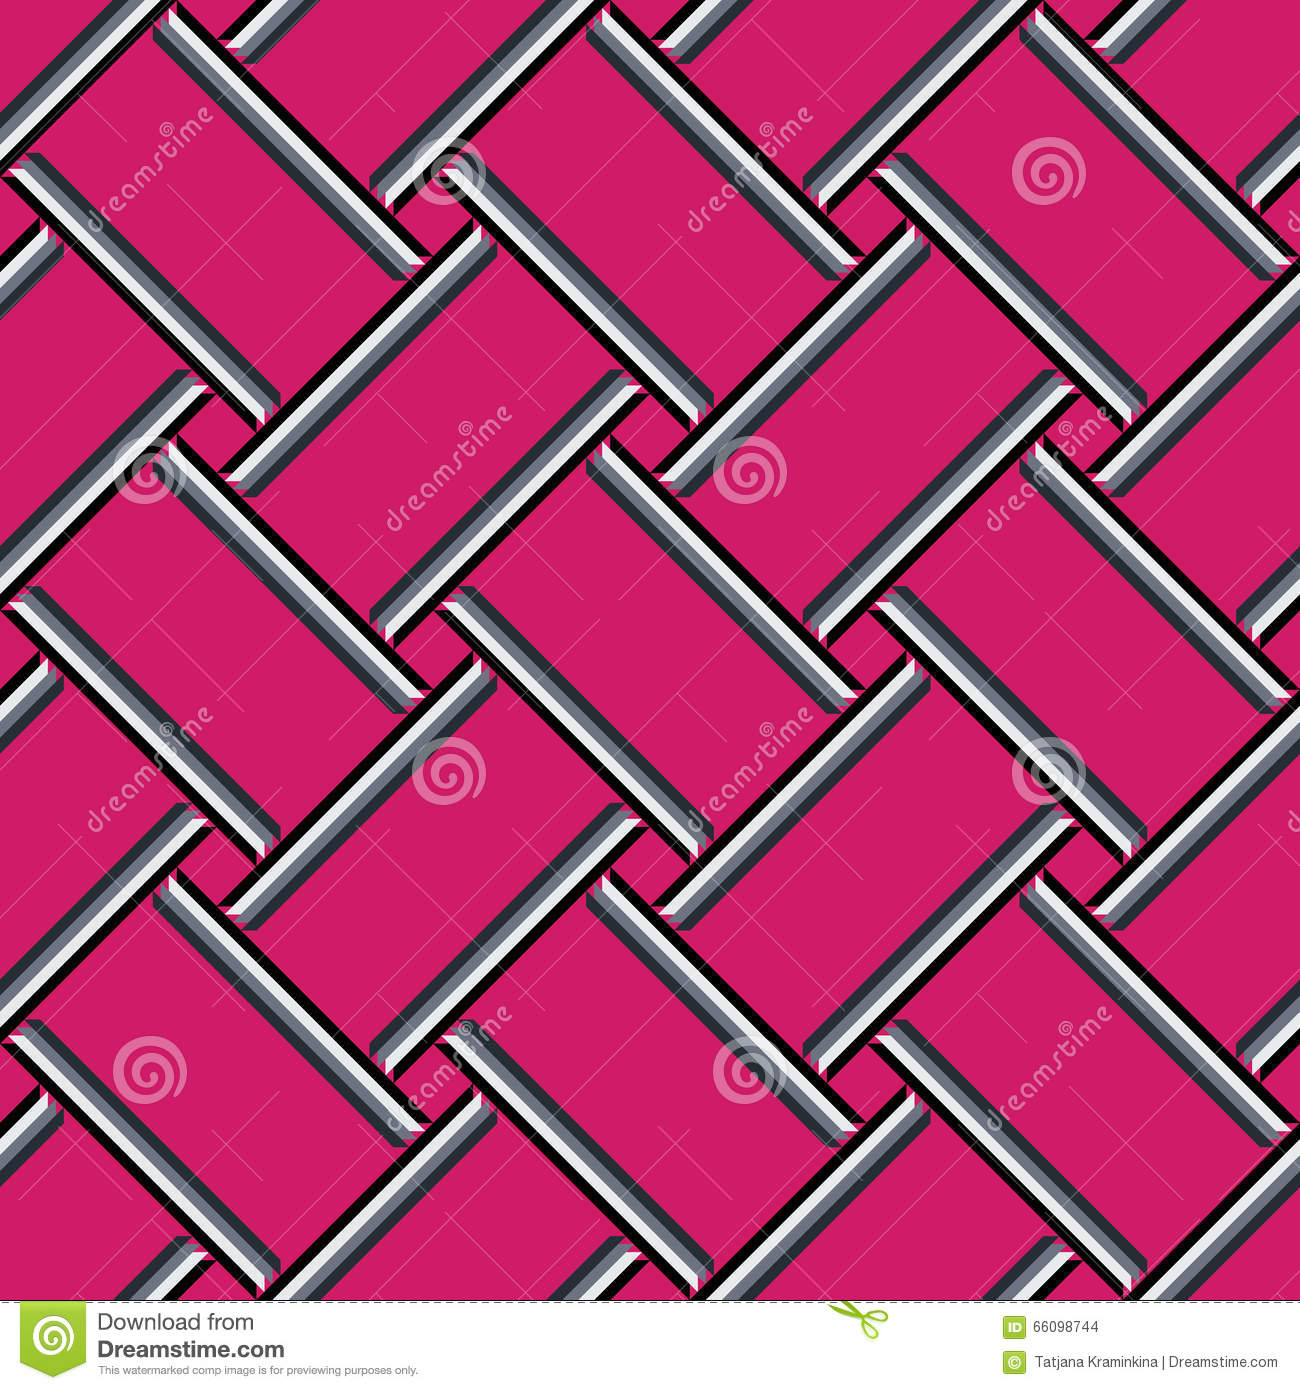 Abstract geometric pattern, colorful pink seamless background.